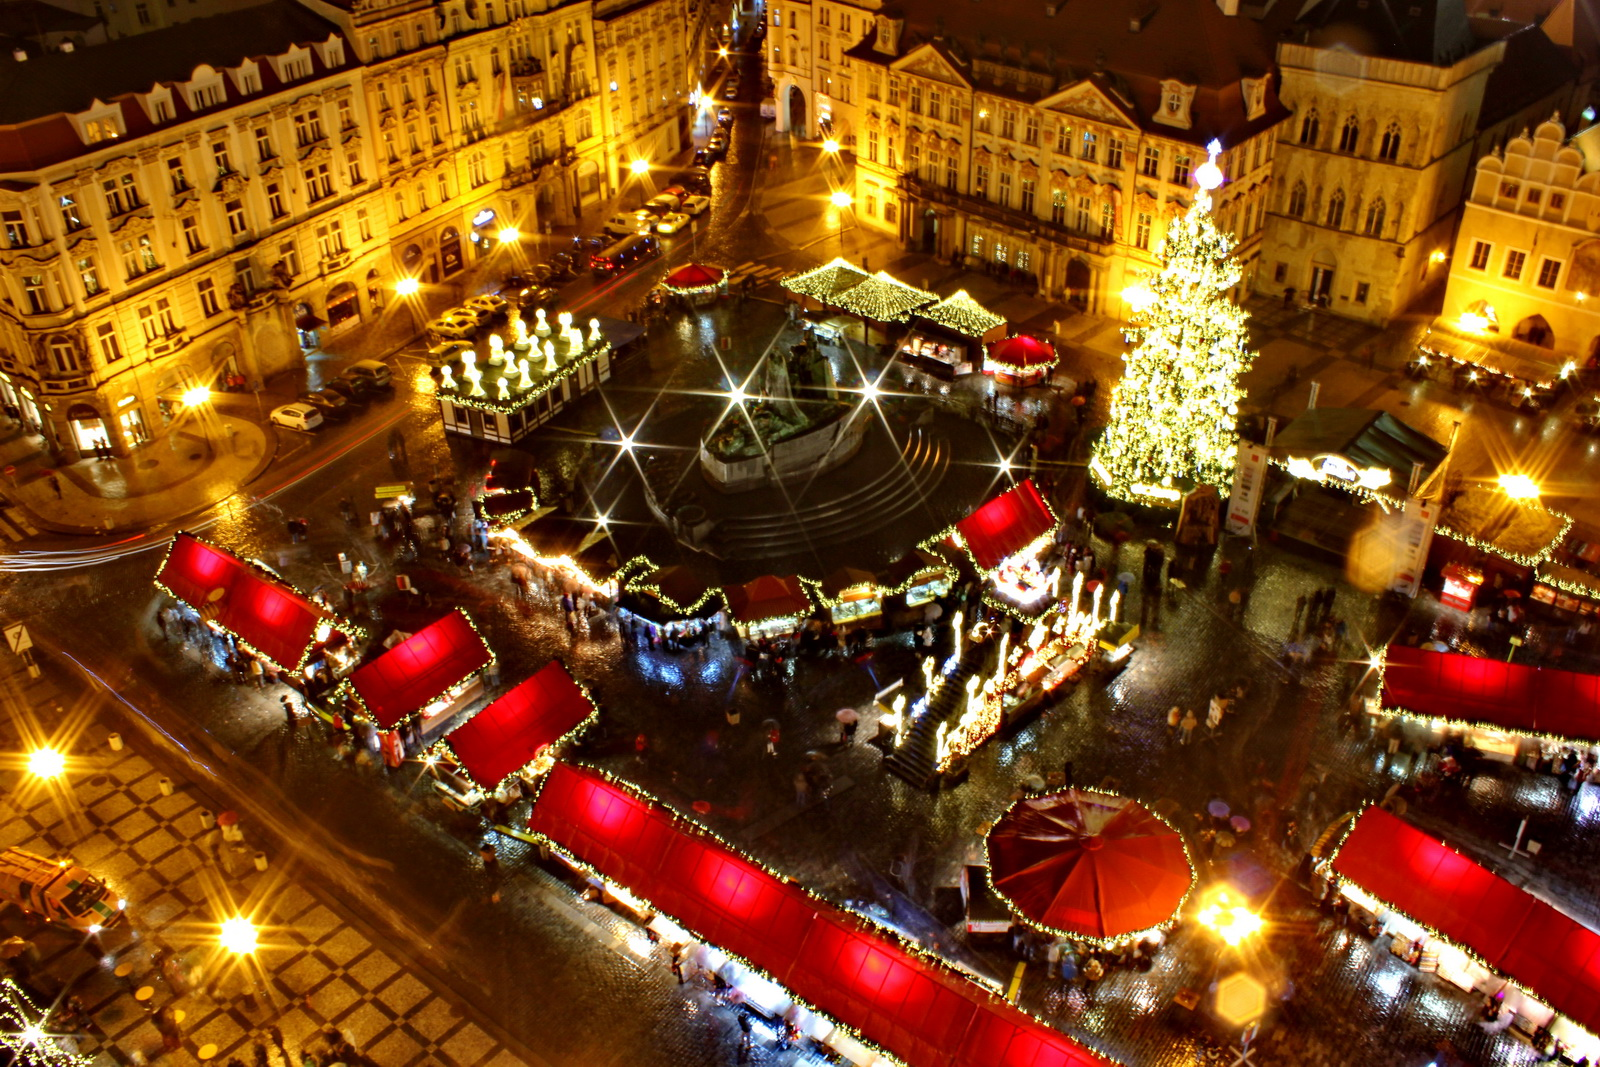 Christmas market in Prague, Czech Republic Credit Vlasta Juricek